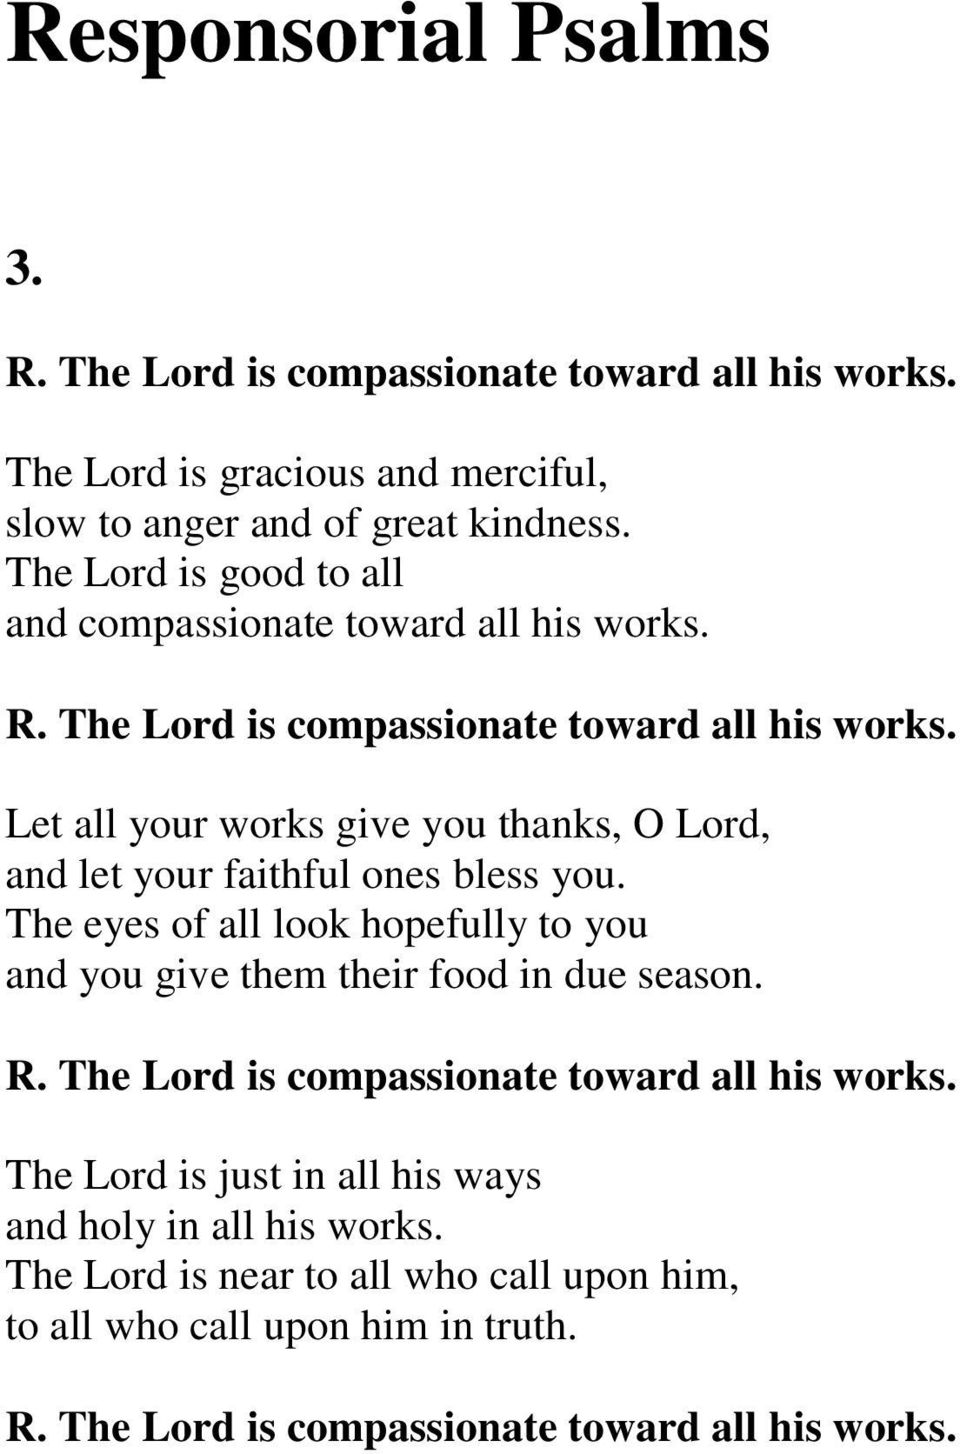 Let all your works give you thanks, O Lord, and let your faithful ones bless you. The eyes of all look hopefully to you and you give them their food in due season. R.